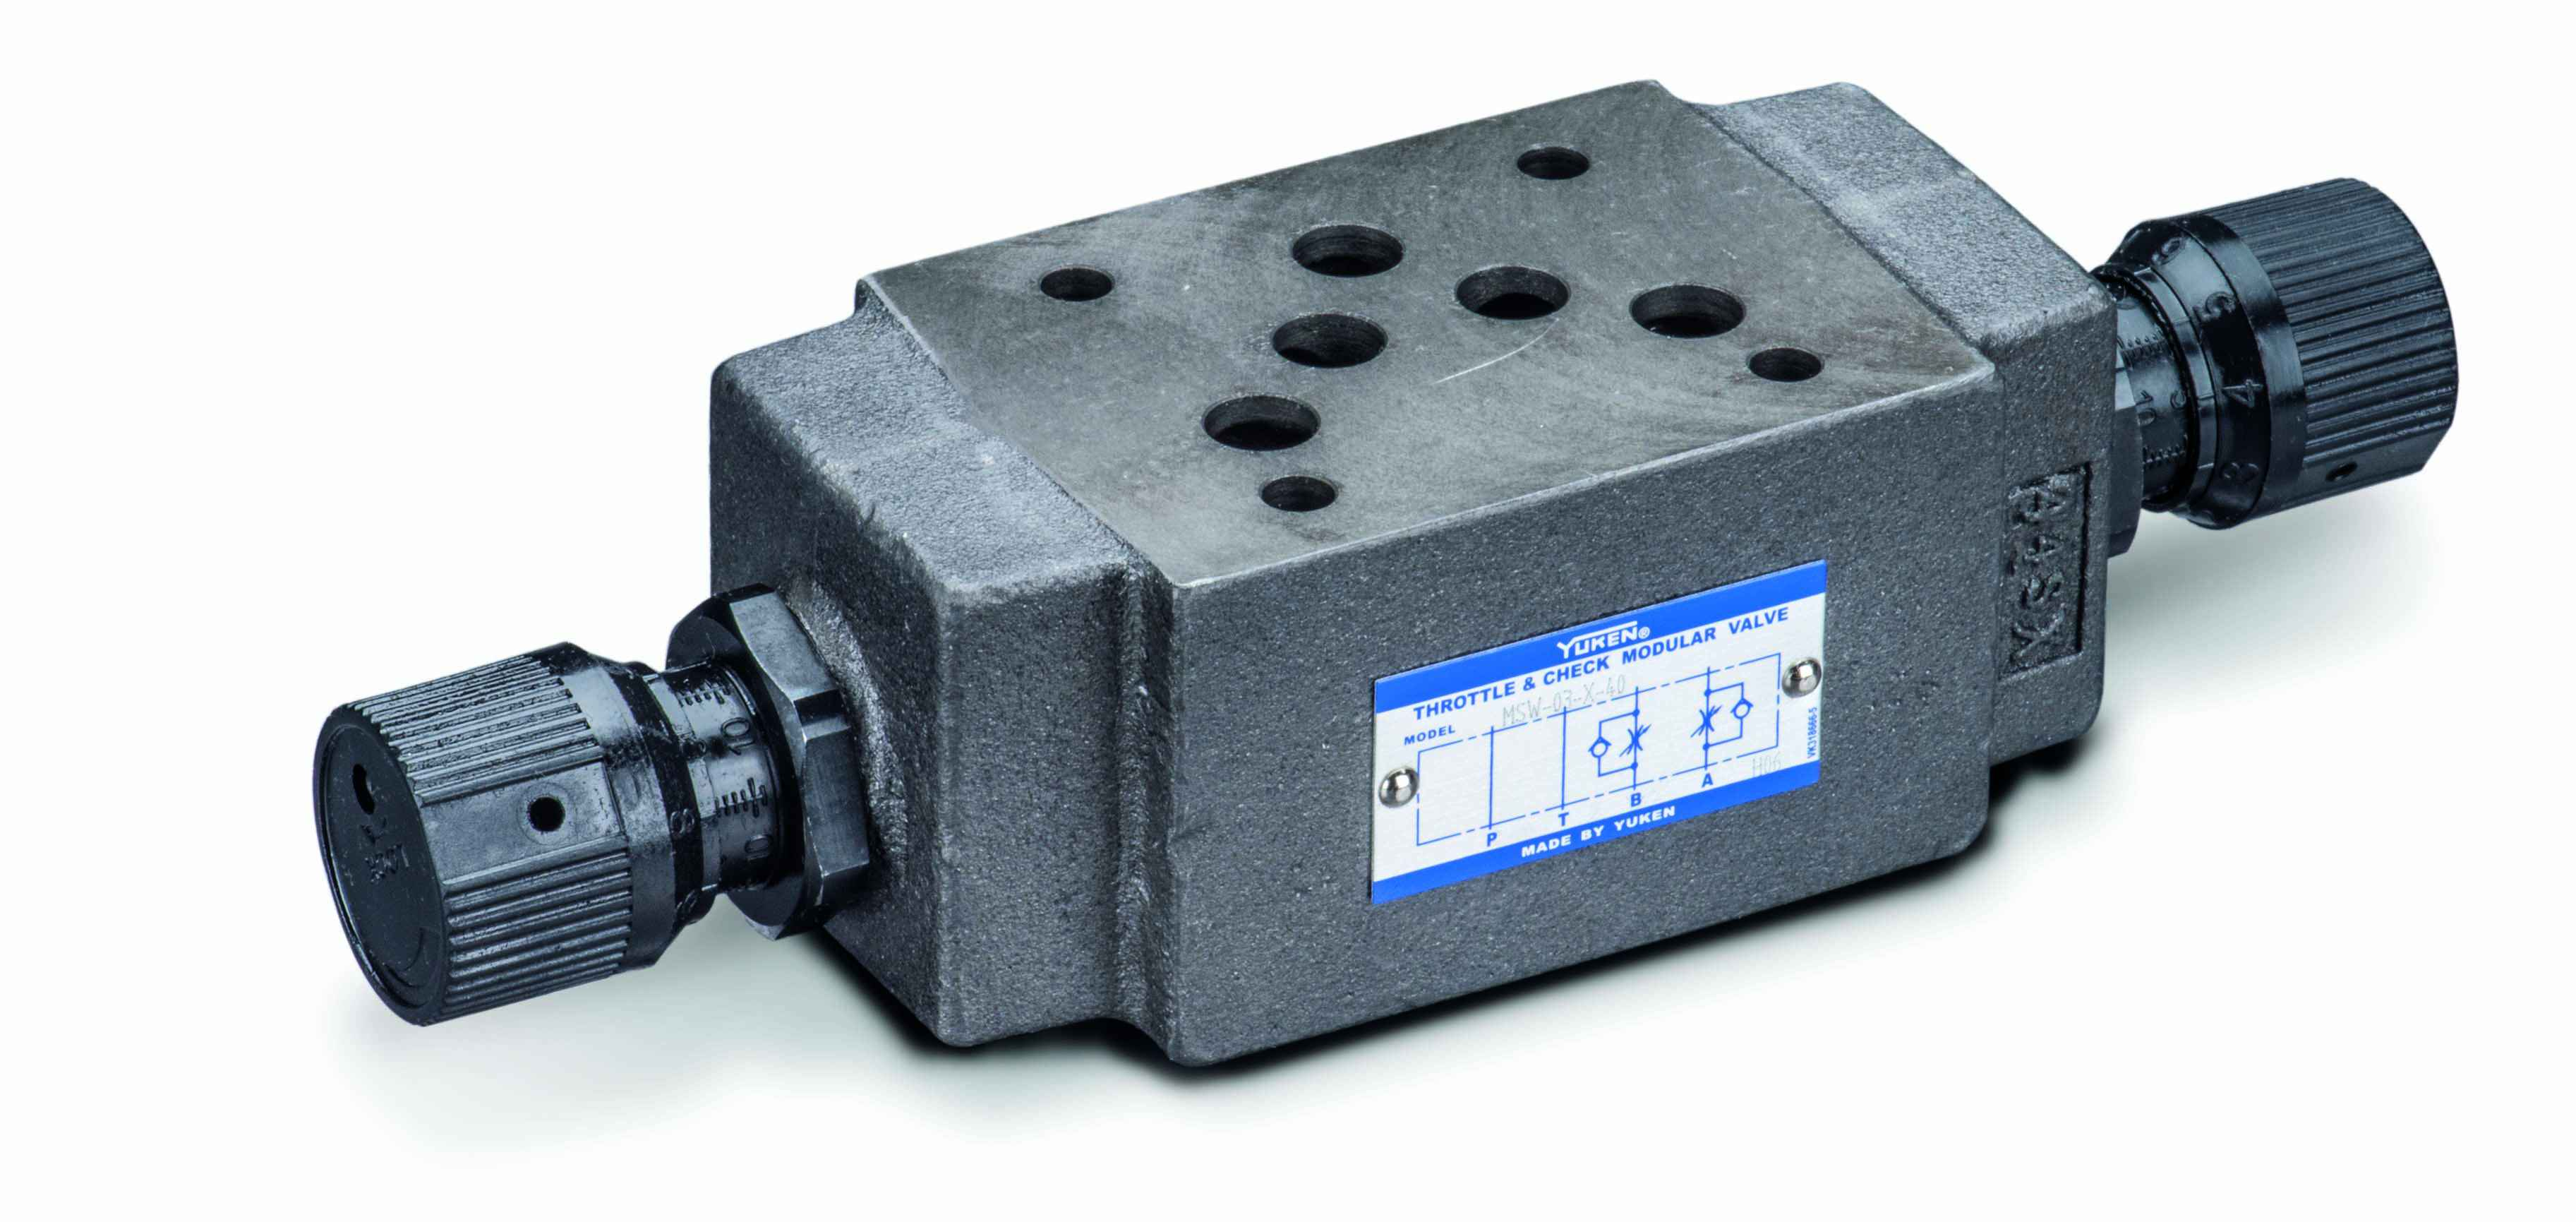 Cetop 5 (NG10) Modular Valves > Flow control Valve With Bypass Check